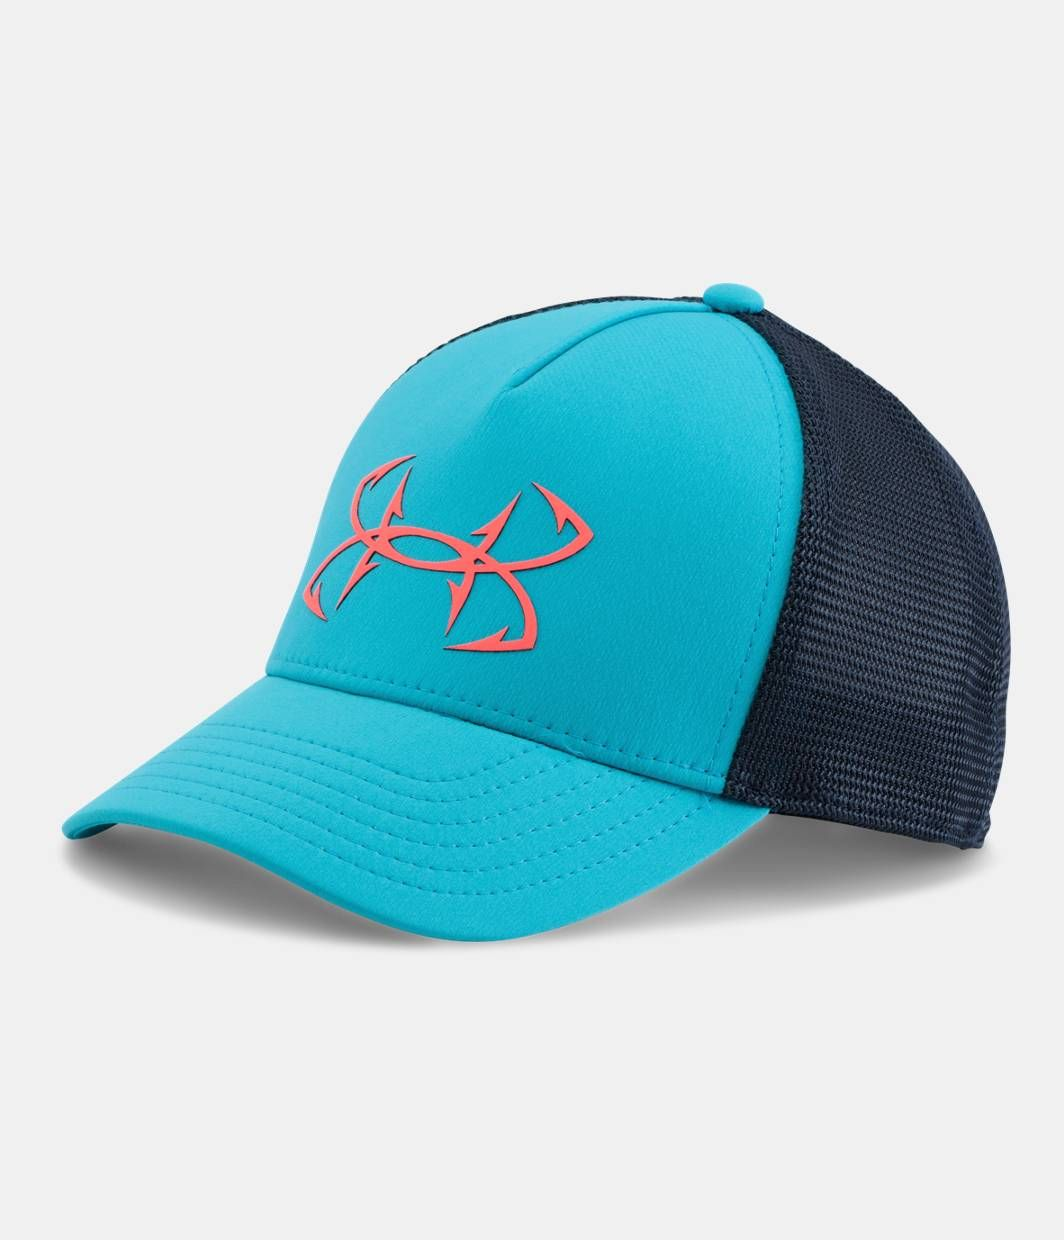 775334dac12 Shop Under Armour for Women s UA Fish Hook Mesh Cap in our Womens Caps  department. Free shipping is available in US.